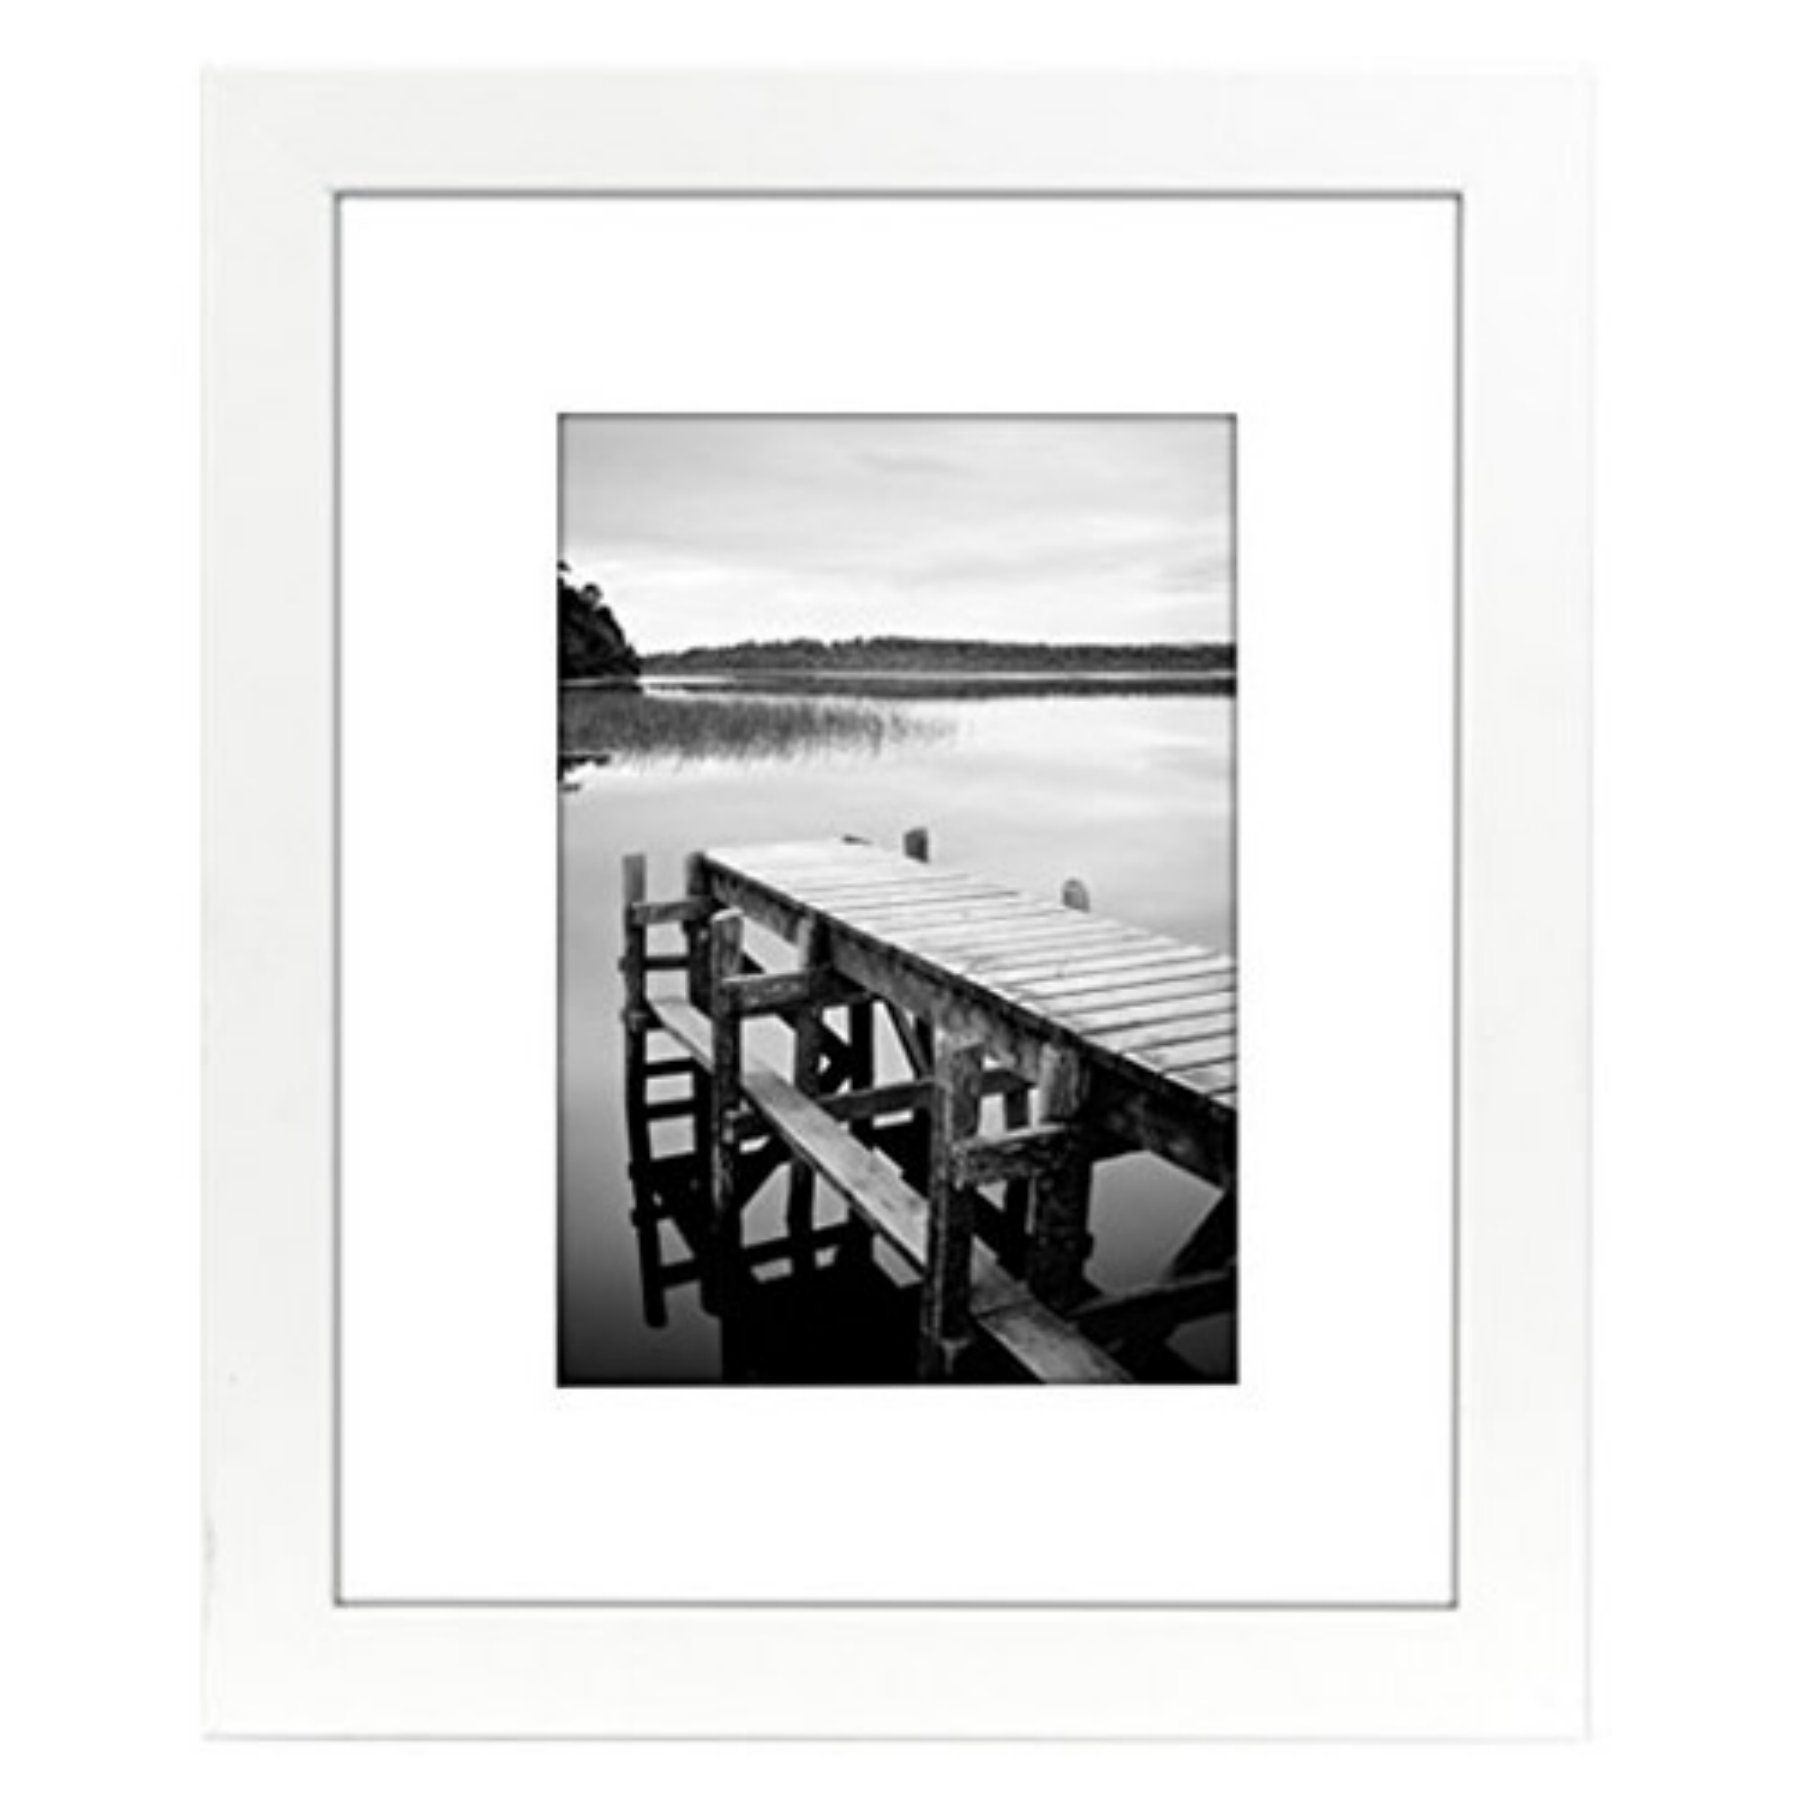 Americanflat 8x10 White Picture Frame - MK-PD3-810-WH